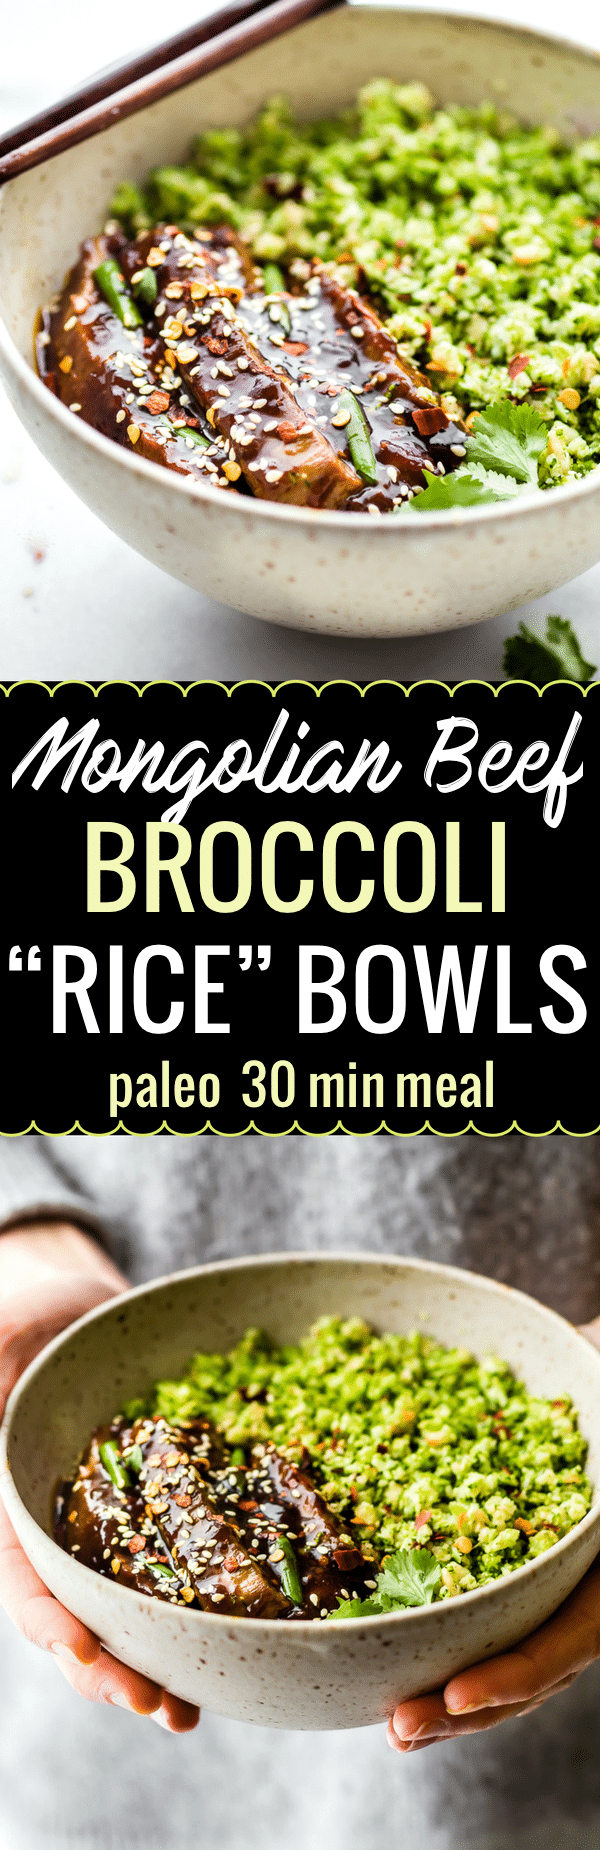 """These Paleo Mongolian Beef Broccoli """"Rice"""" bowls recipes are easy to make in just 30 to 40 minutes, light, and full of garlic and ginger flavors! A SAUCY Asian inspired homemade take out dish for you and your family to enjoy! Gluten free and veggie packed. www.cottercrunch.com"""